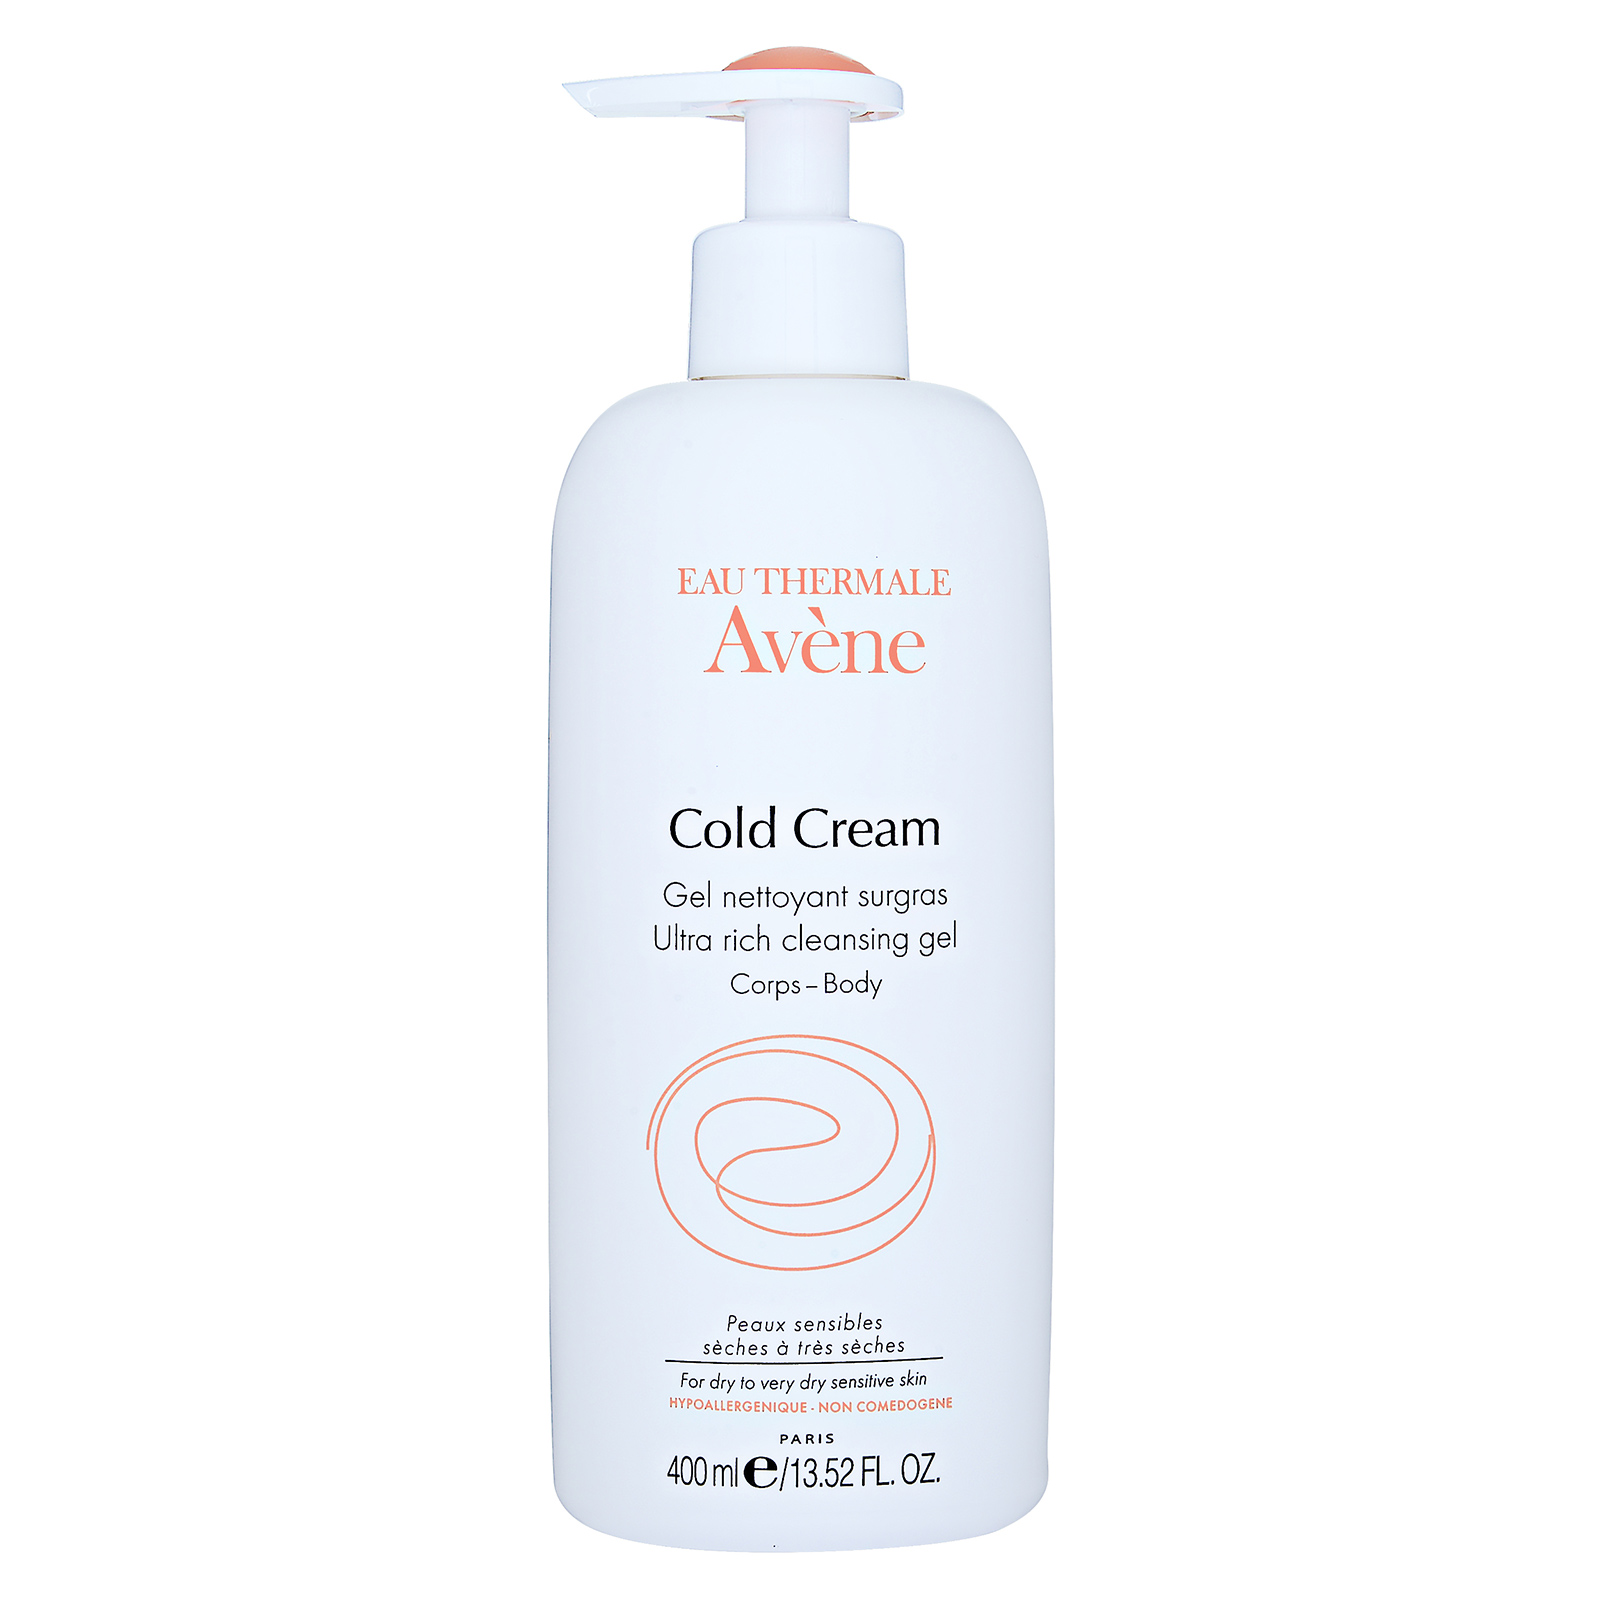 Avène Cold Cream Ultra Rich Cleansing Gel (Body) 13.52oz, 400ml